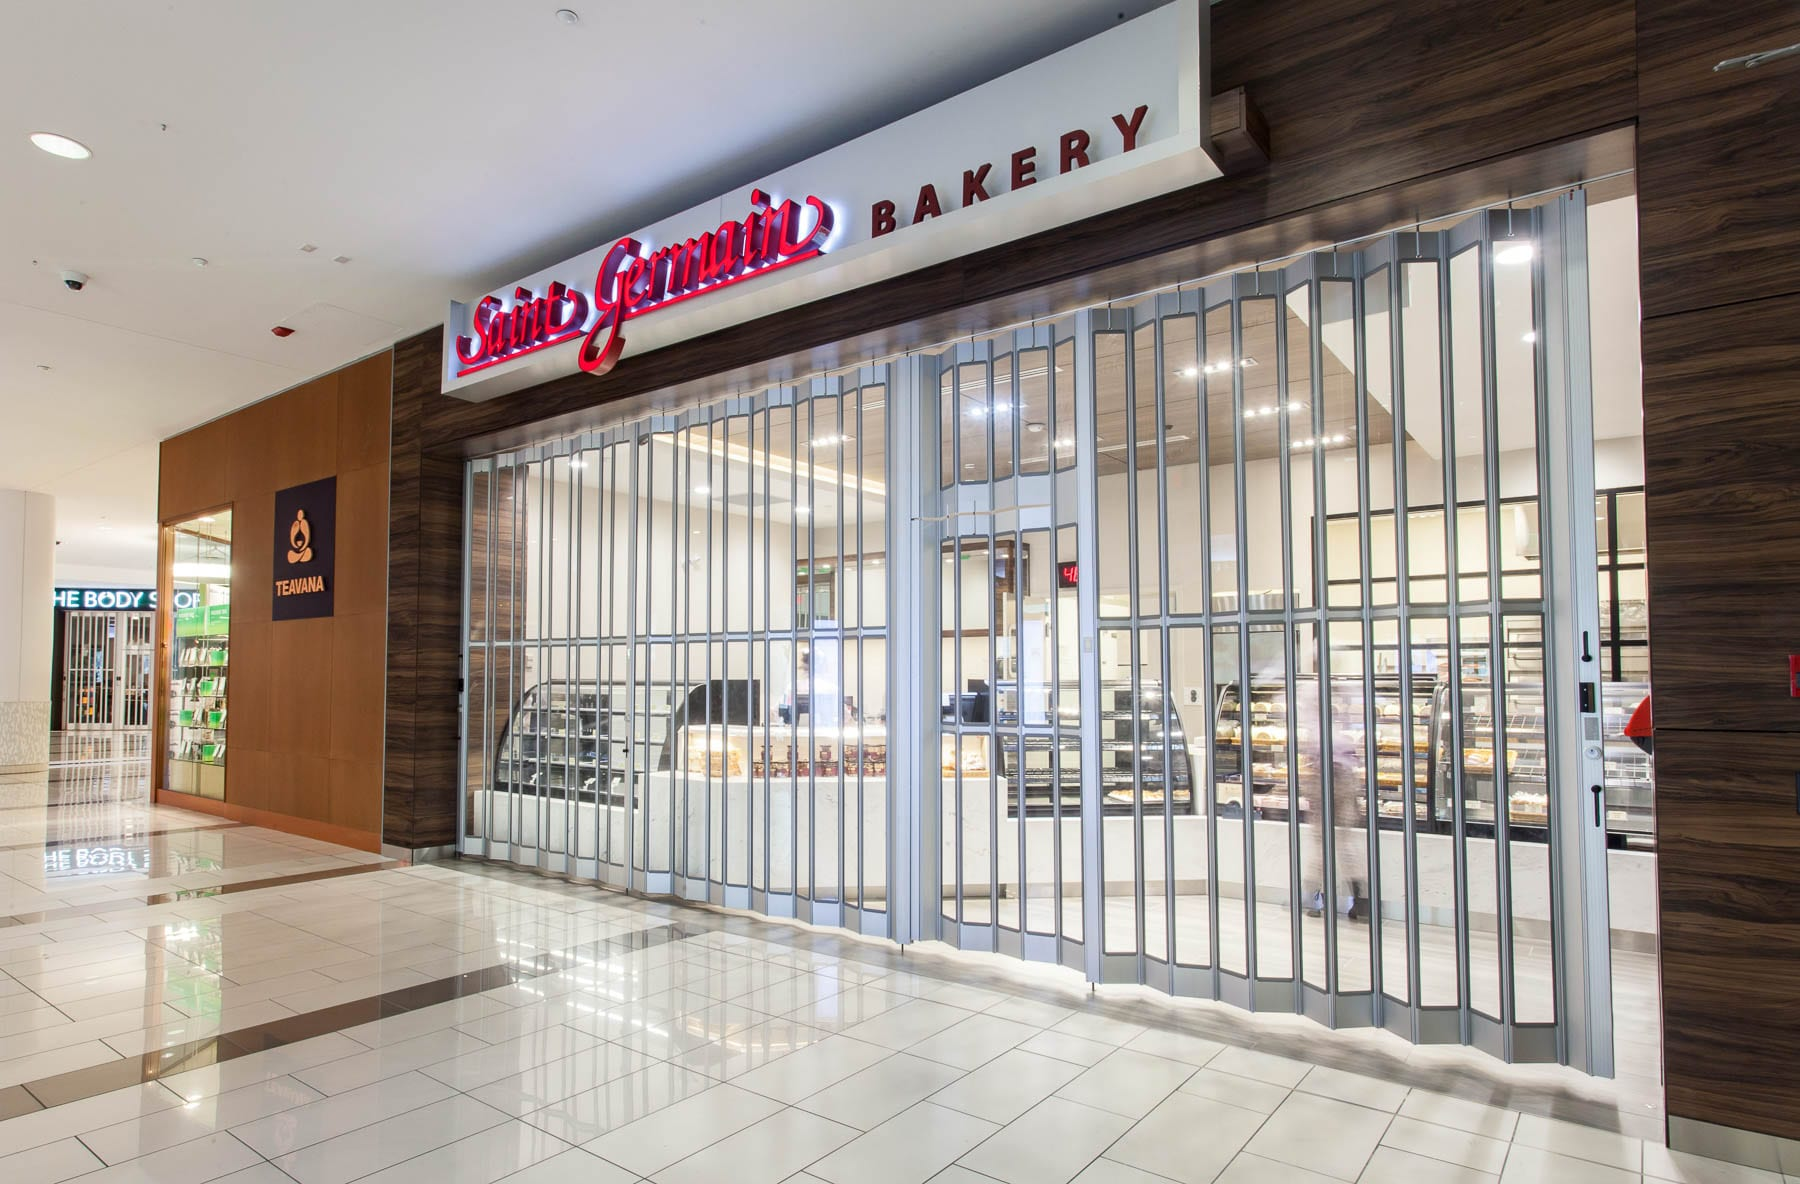 Electrical and rolling security grille for Saint Germain Bakery's renovation project